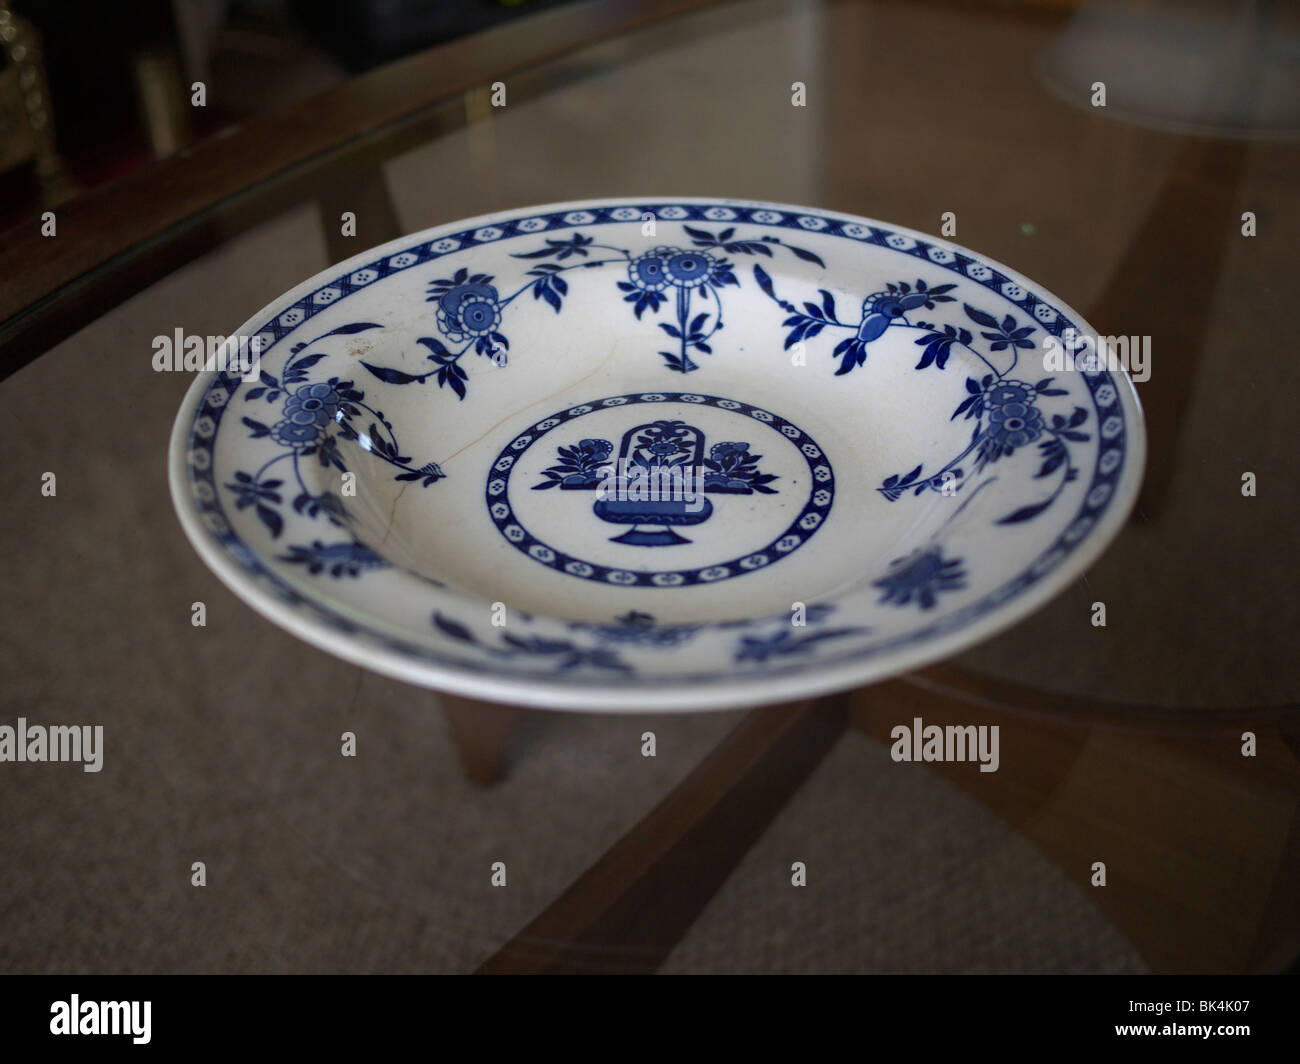 Antique Minton Delft plate. & Antique Minton Delft plate Stock Photo: 28991543 - Alamy